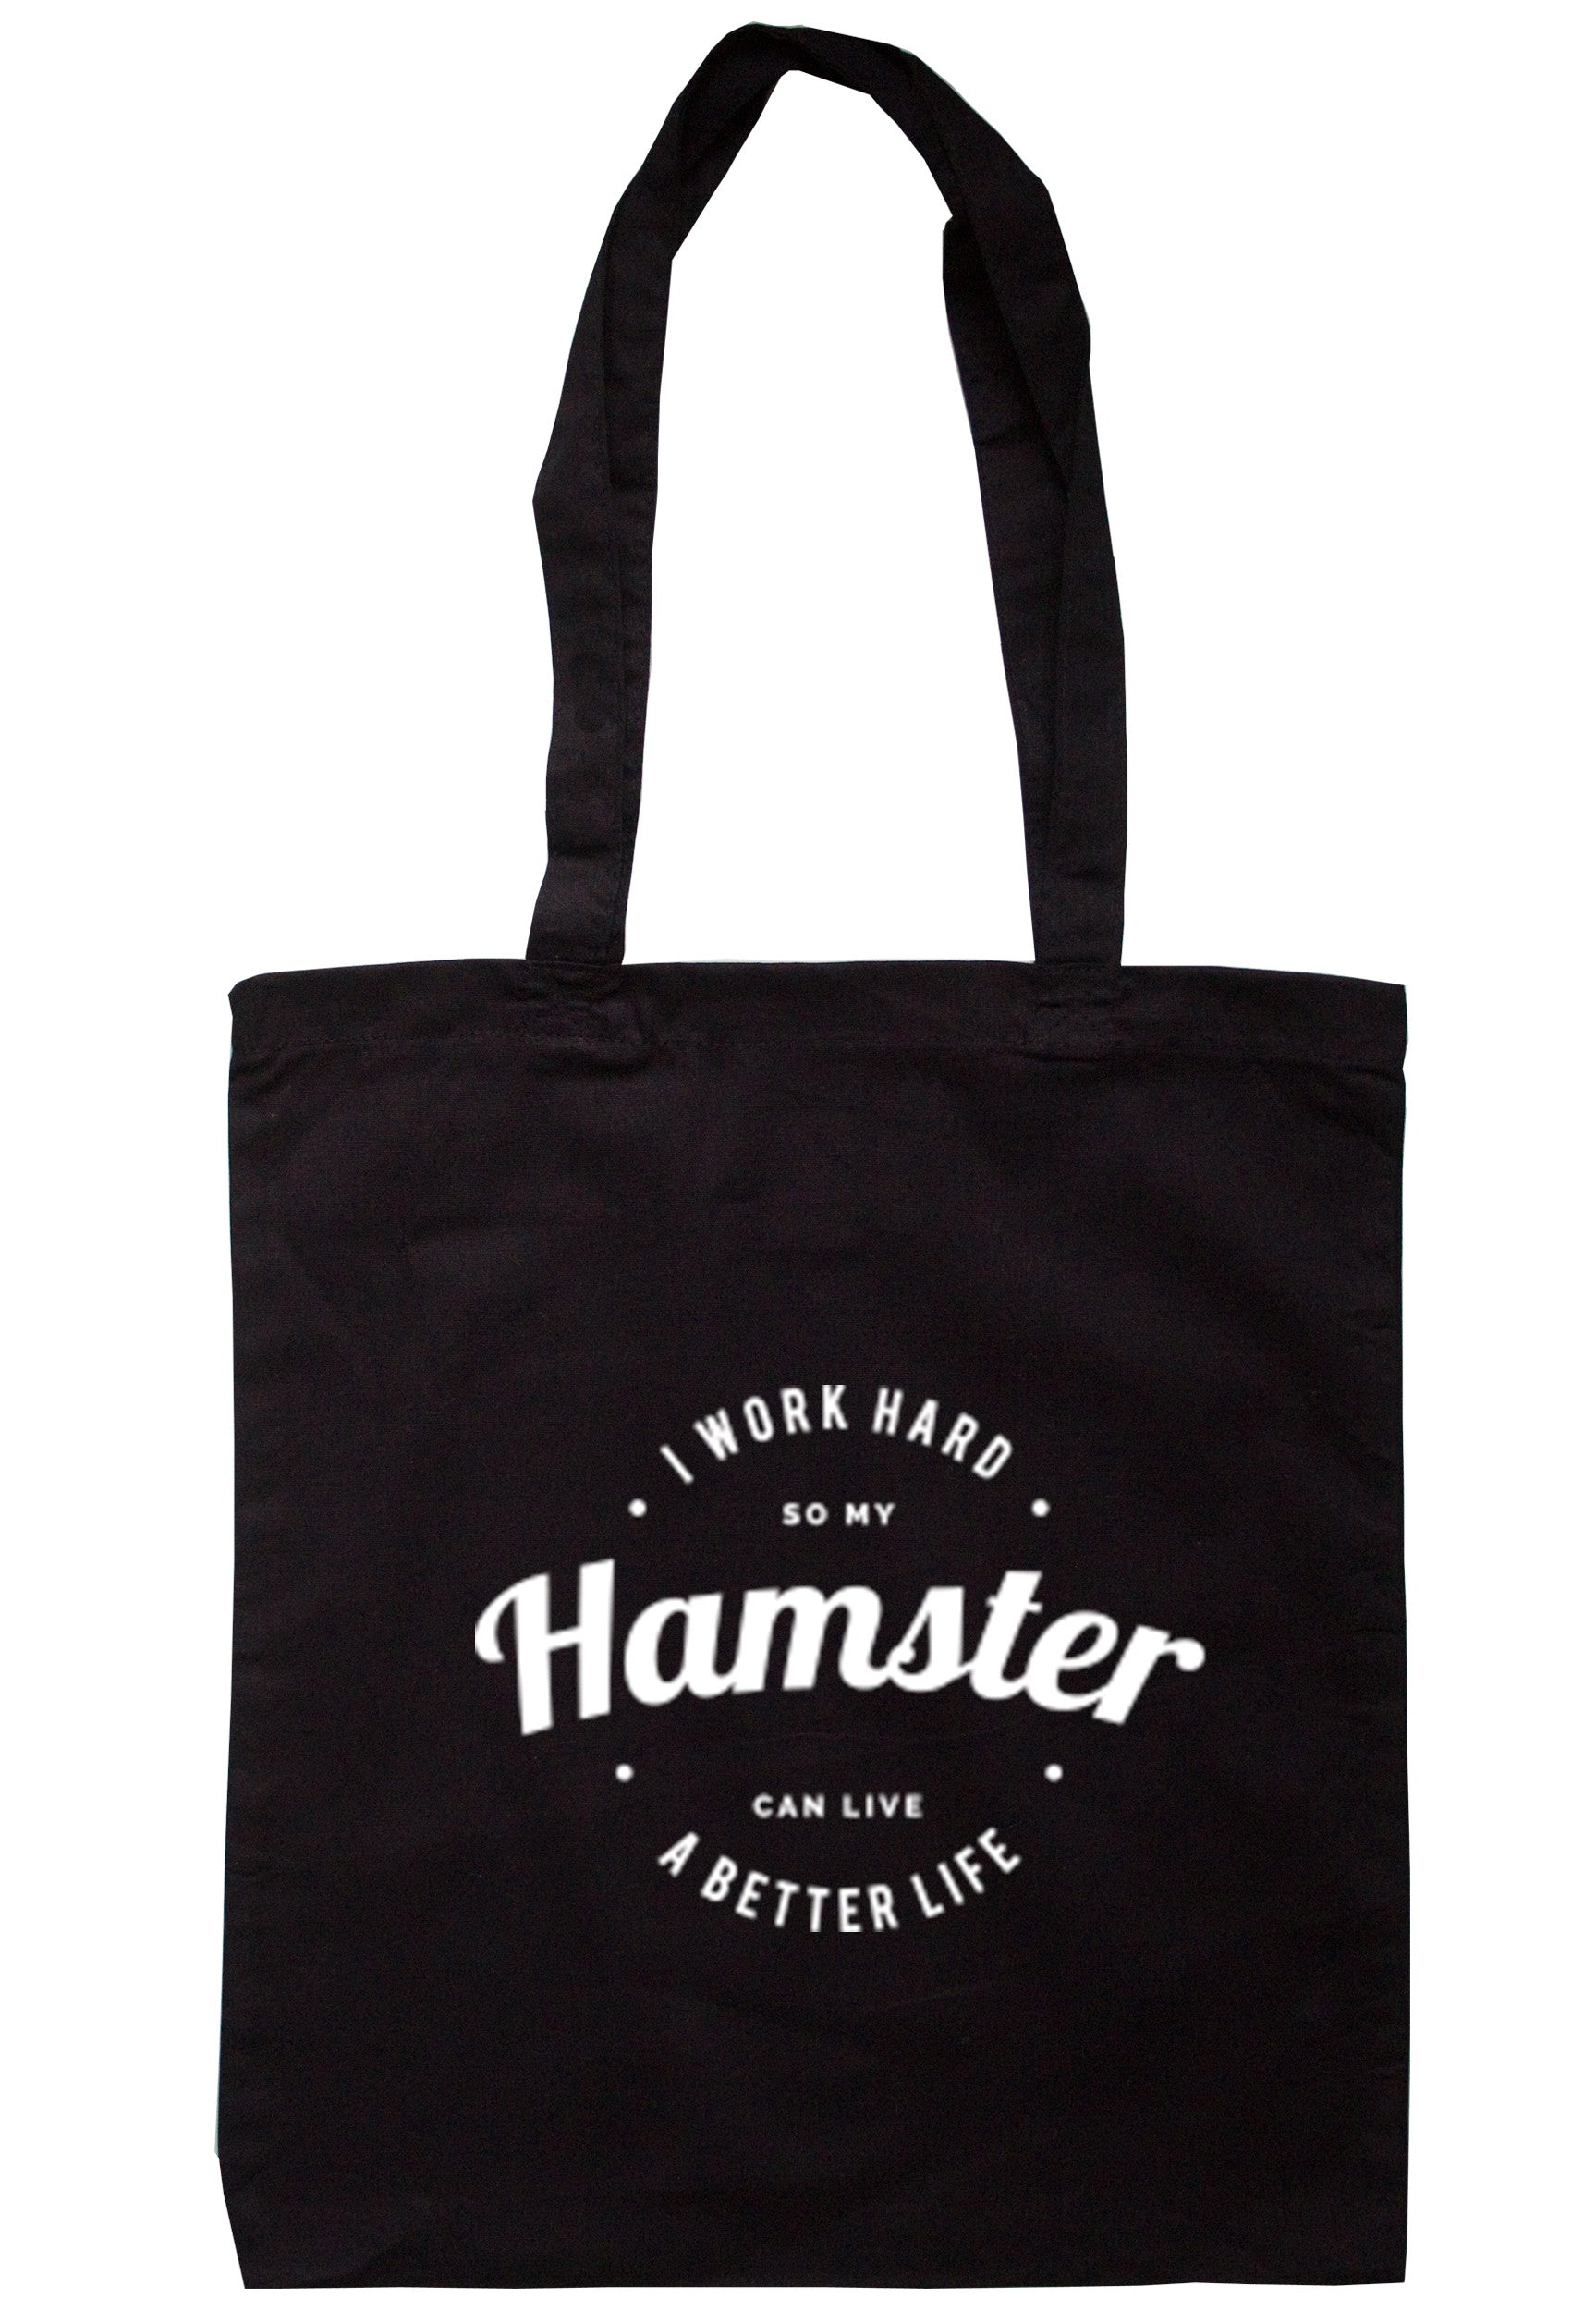 I Work Hard So My Hamster Can Live A Better Life Tote Bag TB0231 - Illustrated Identity Ltd.